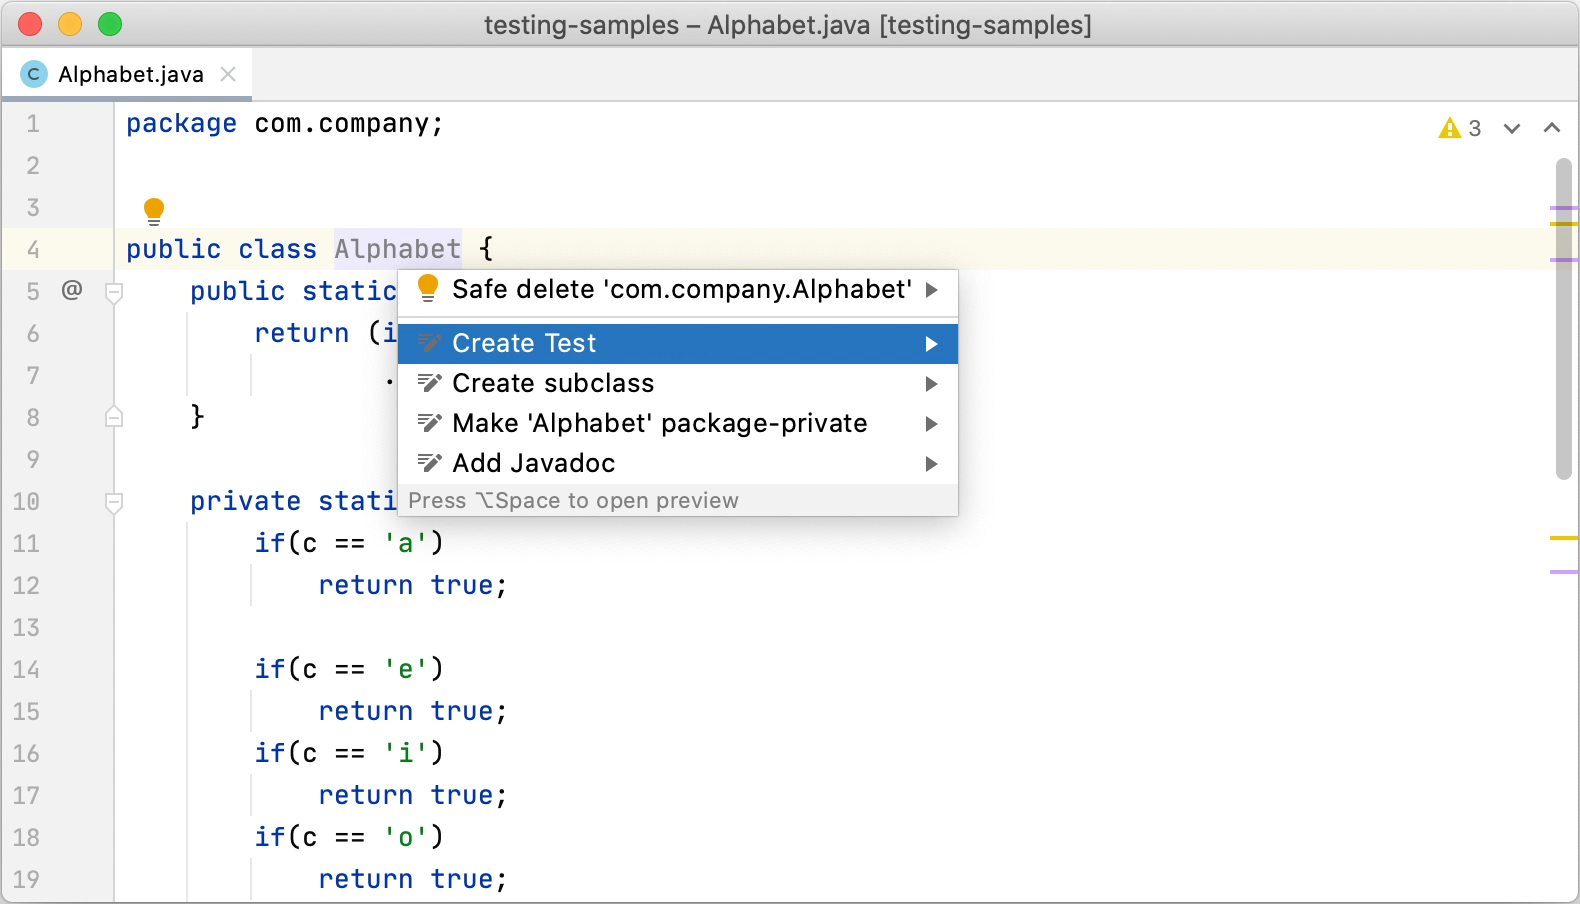 Creating a new test using the Create Test context action